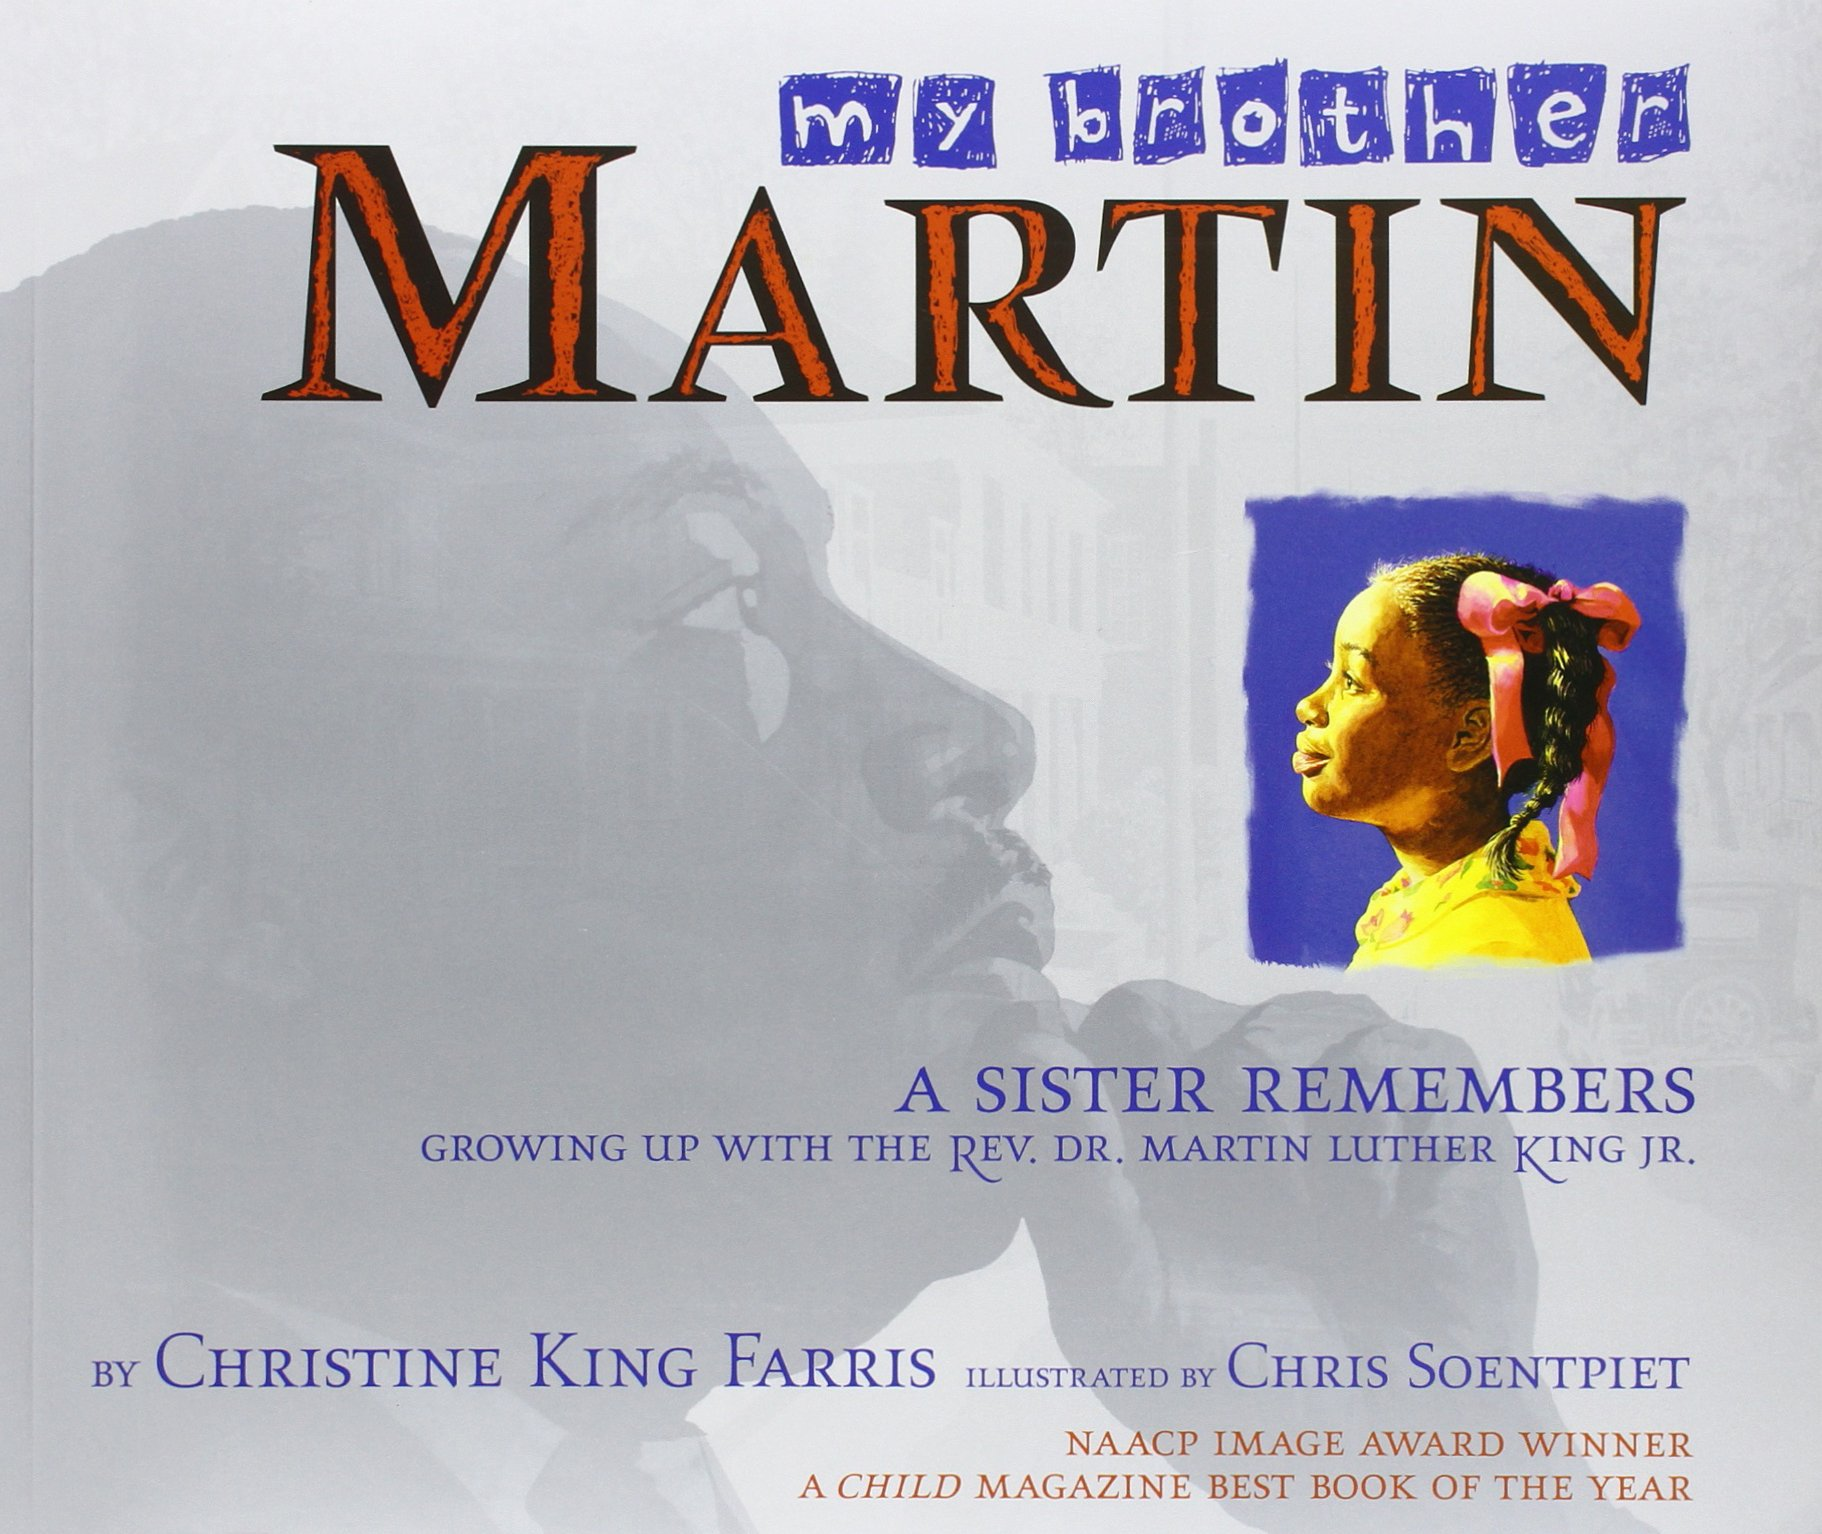 My Brother Martin: A Sister Remembers Growing Up with the Rev. Dr. Martin Luther King Jr. – Christine King Farris